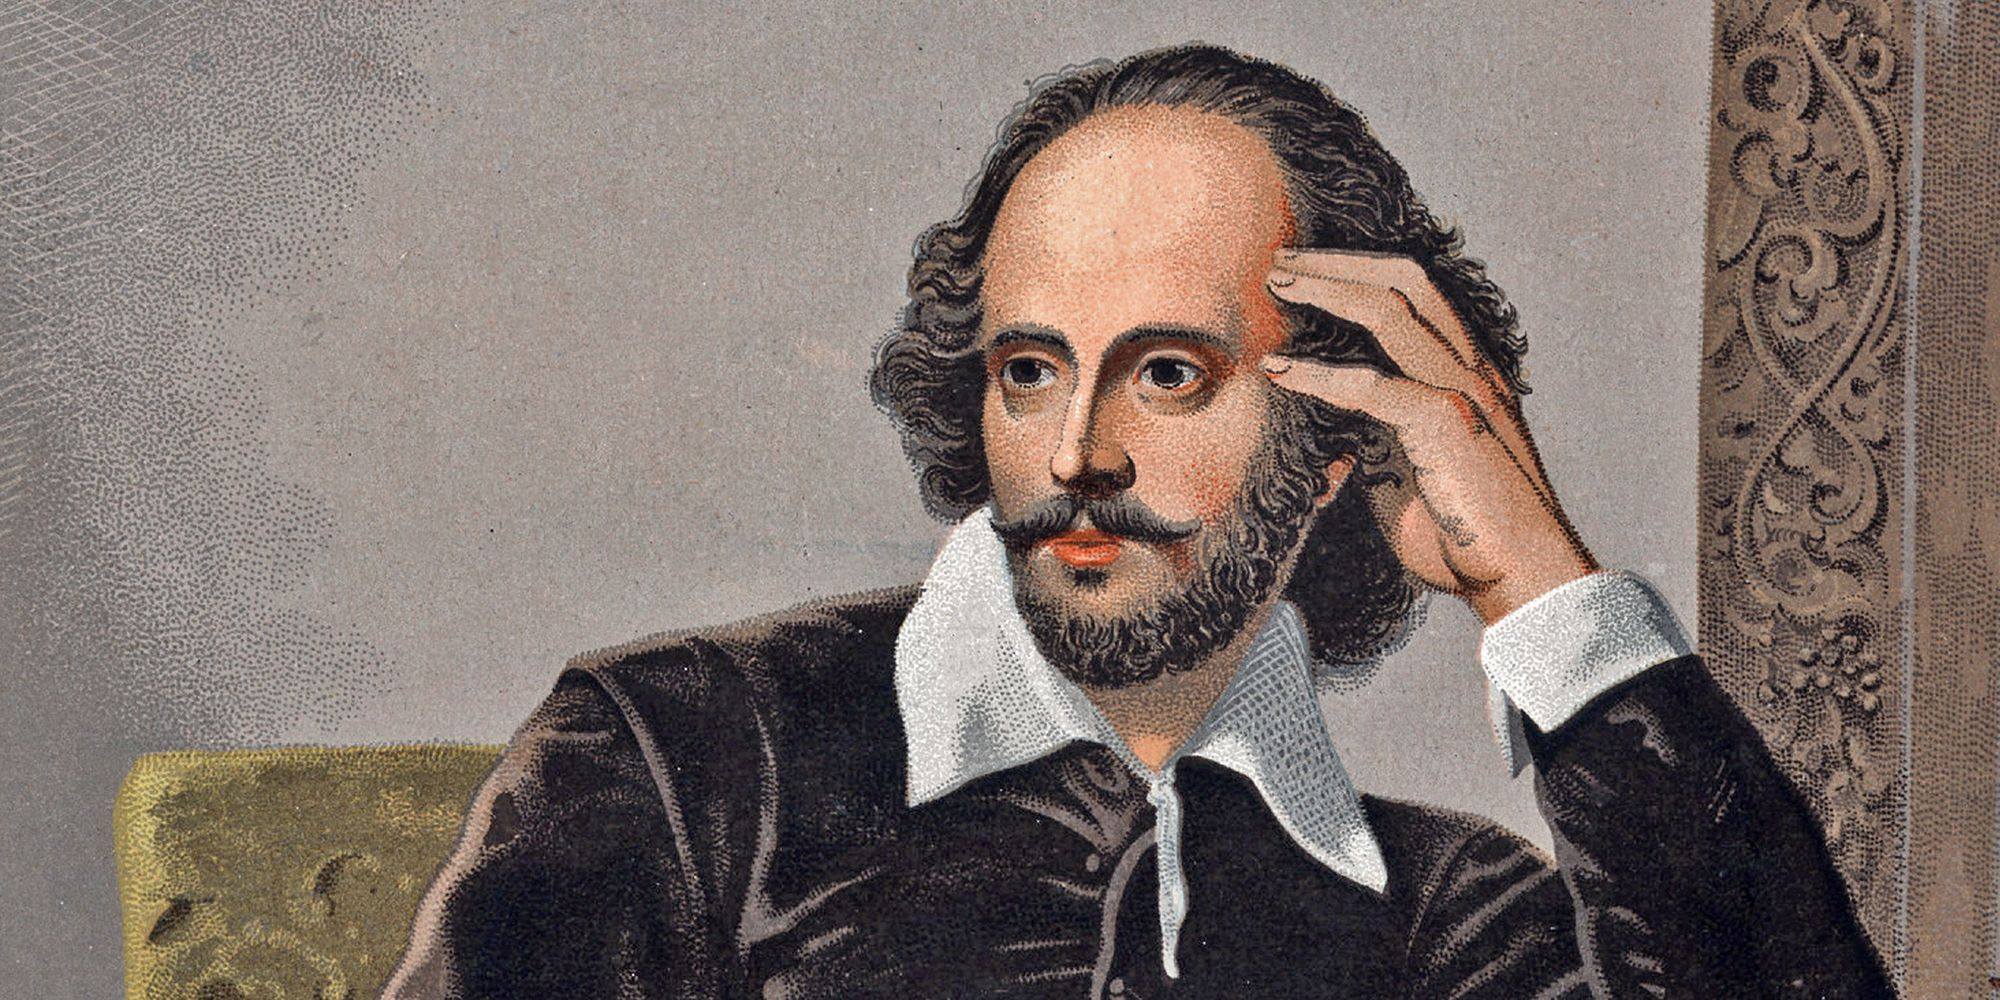 William shakespeare bisexual